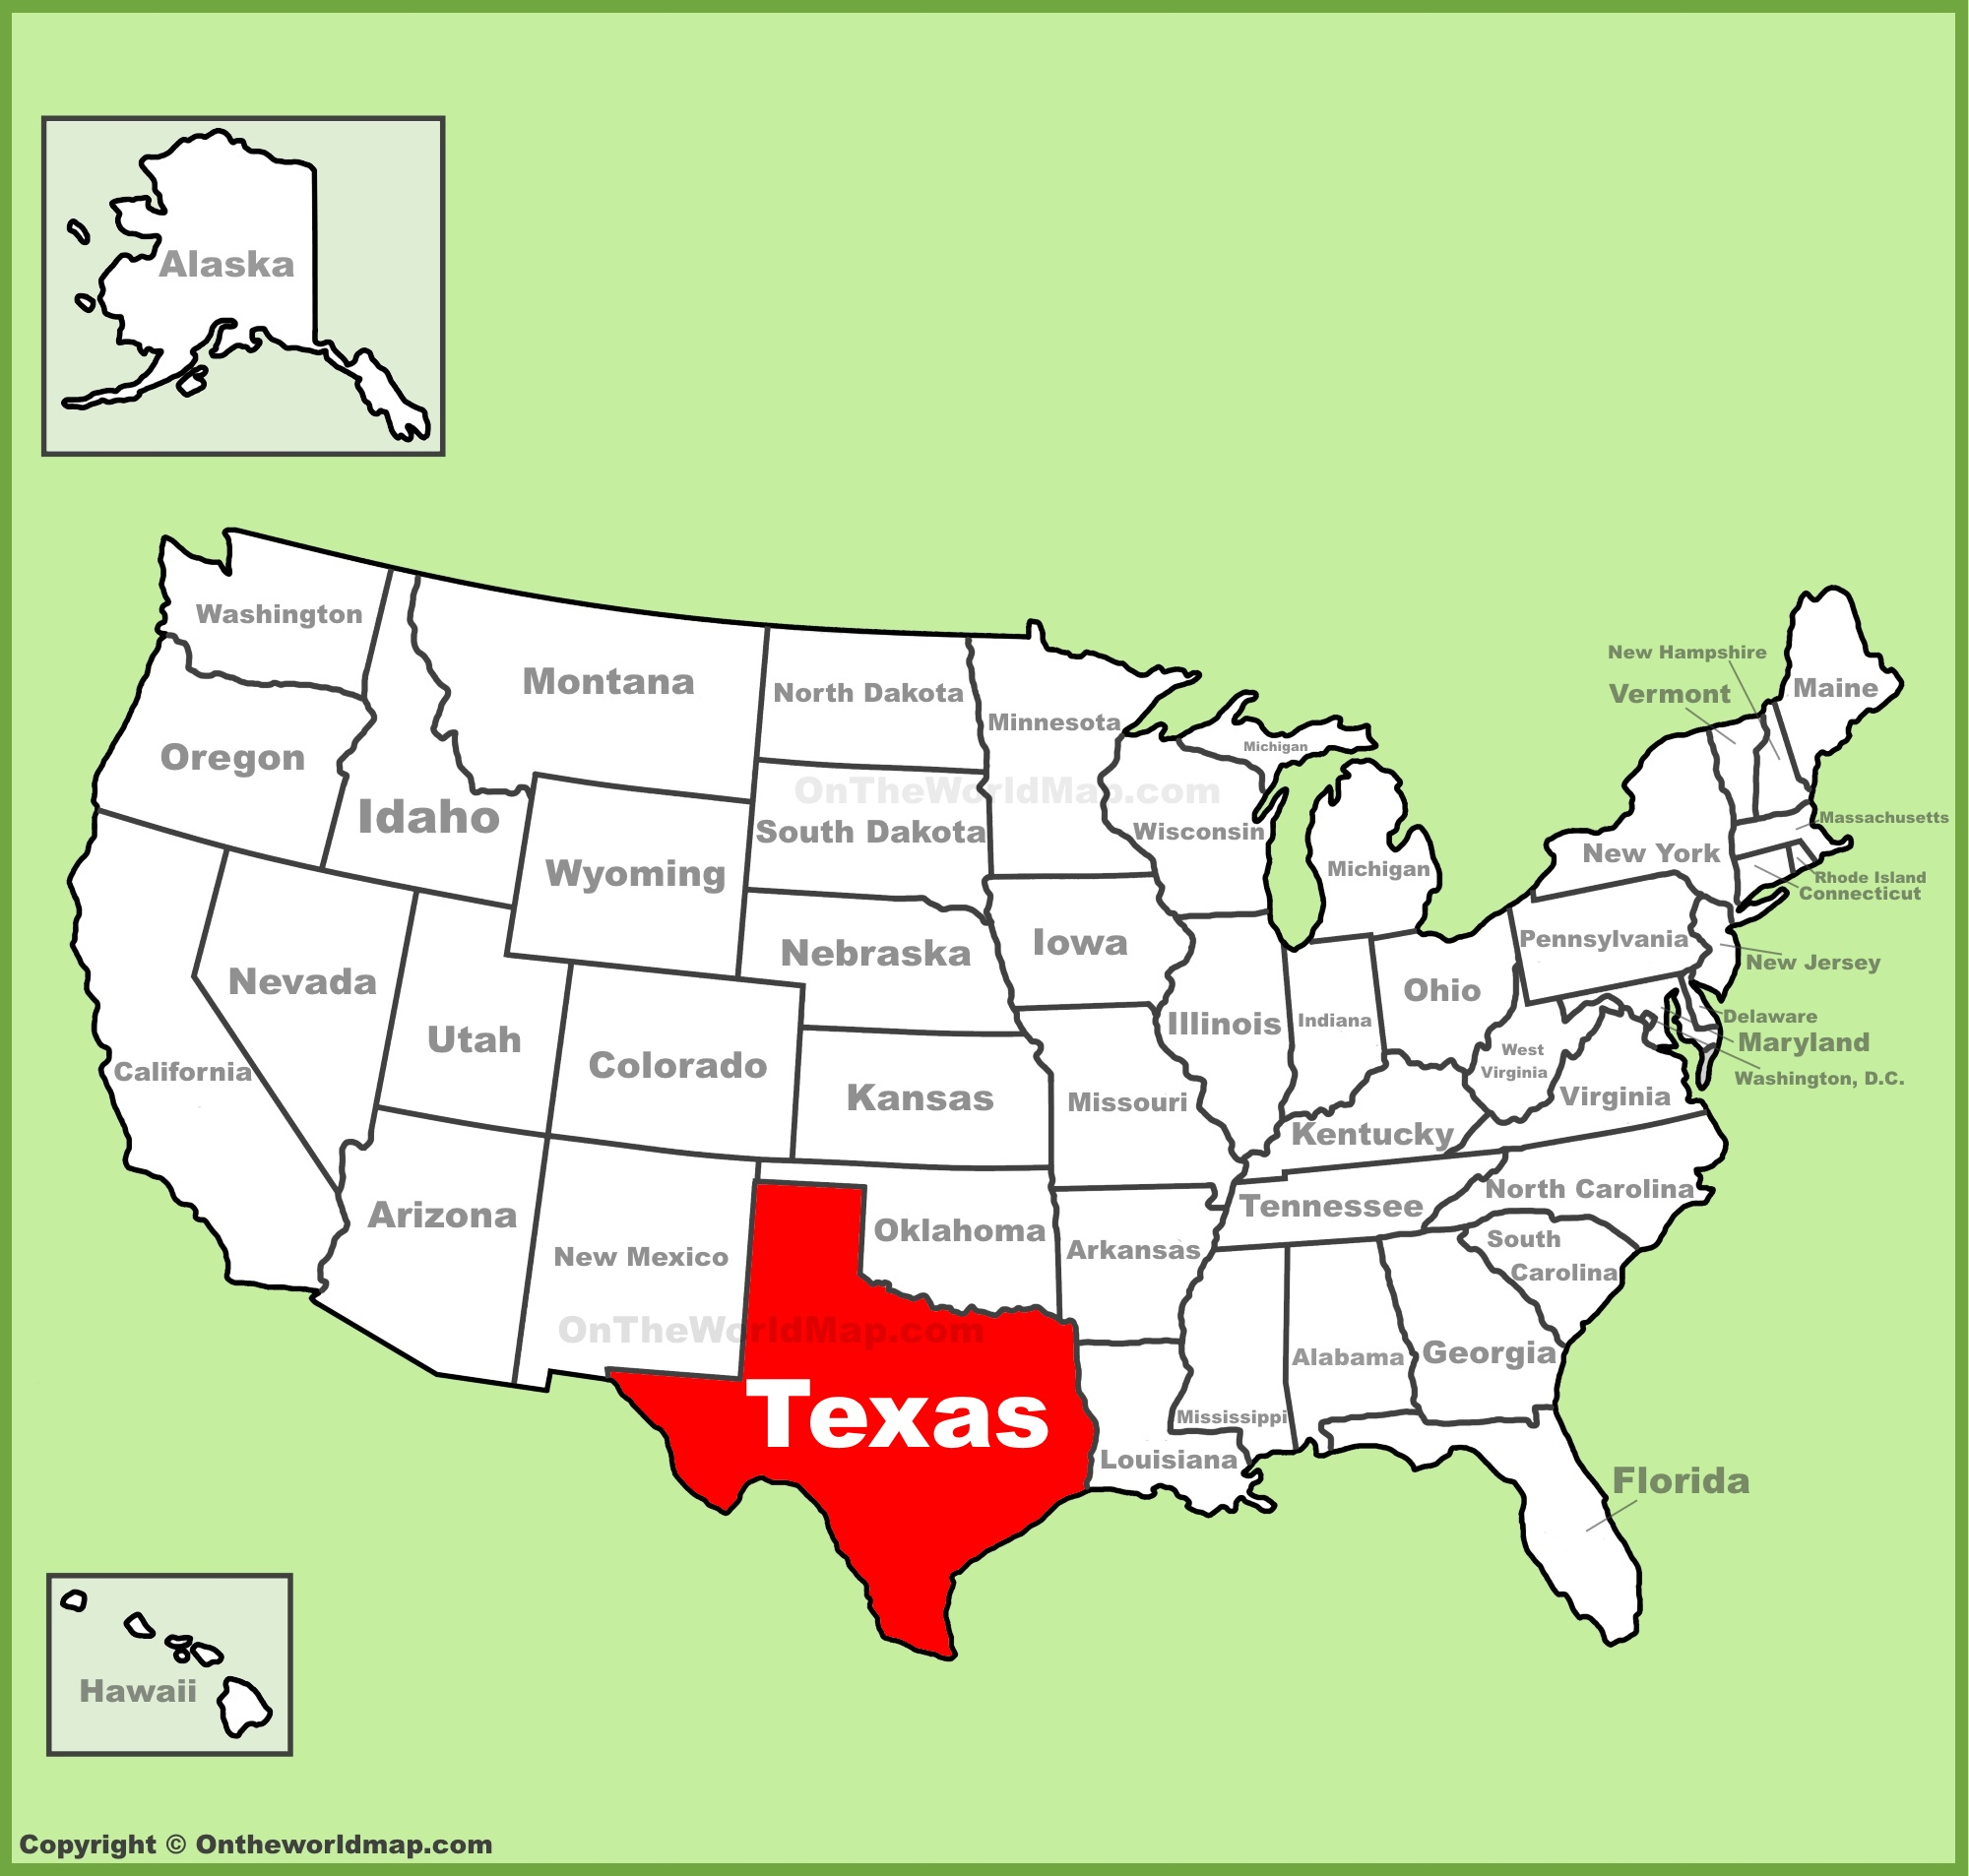 Texas Location On The U S Map